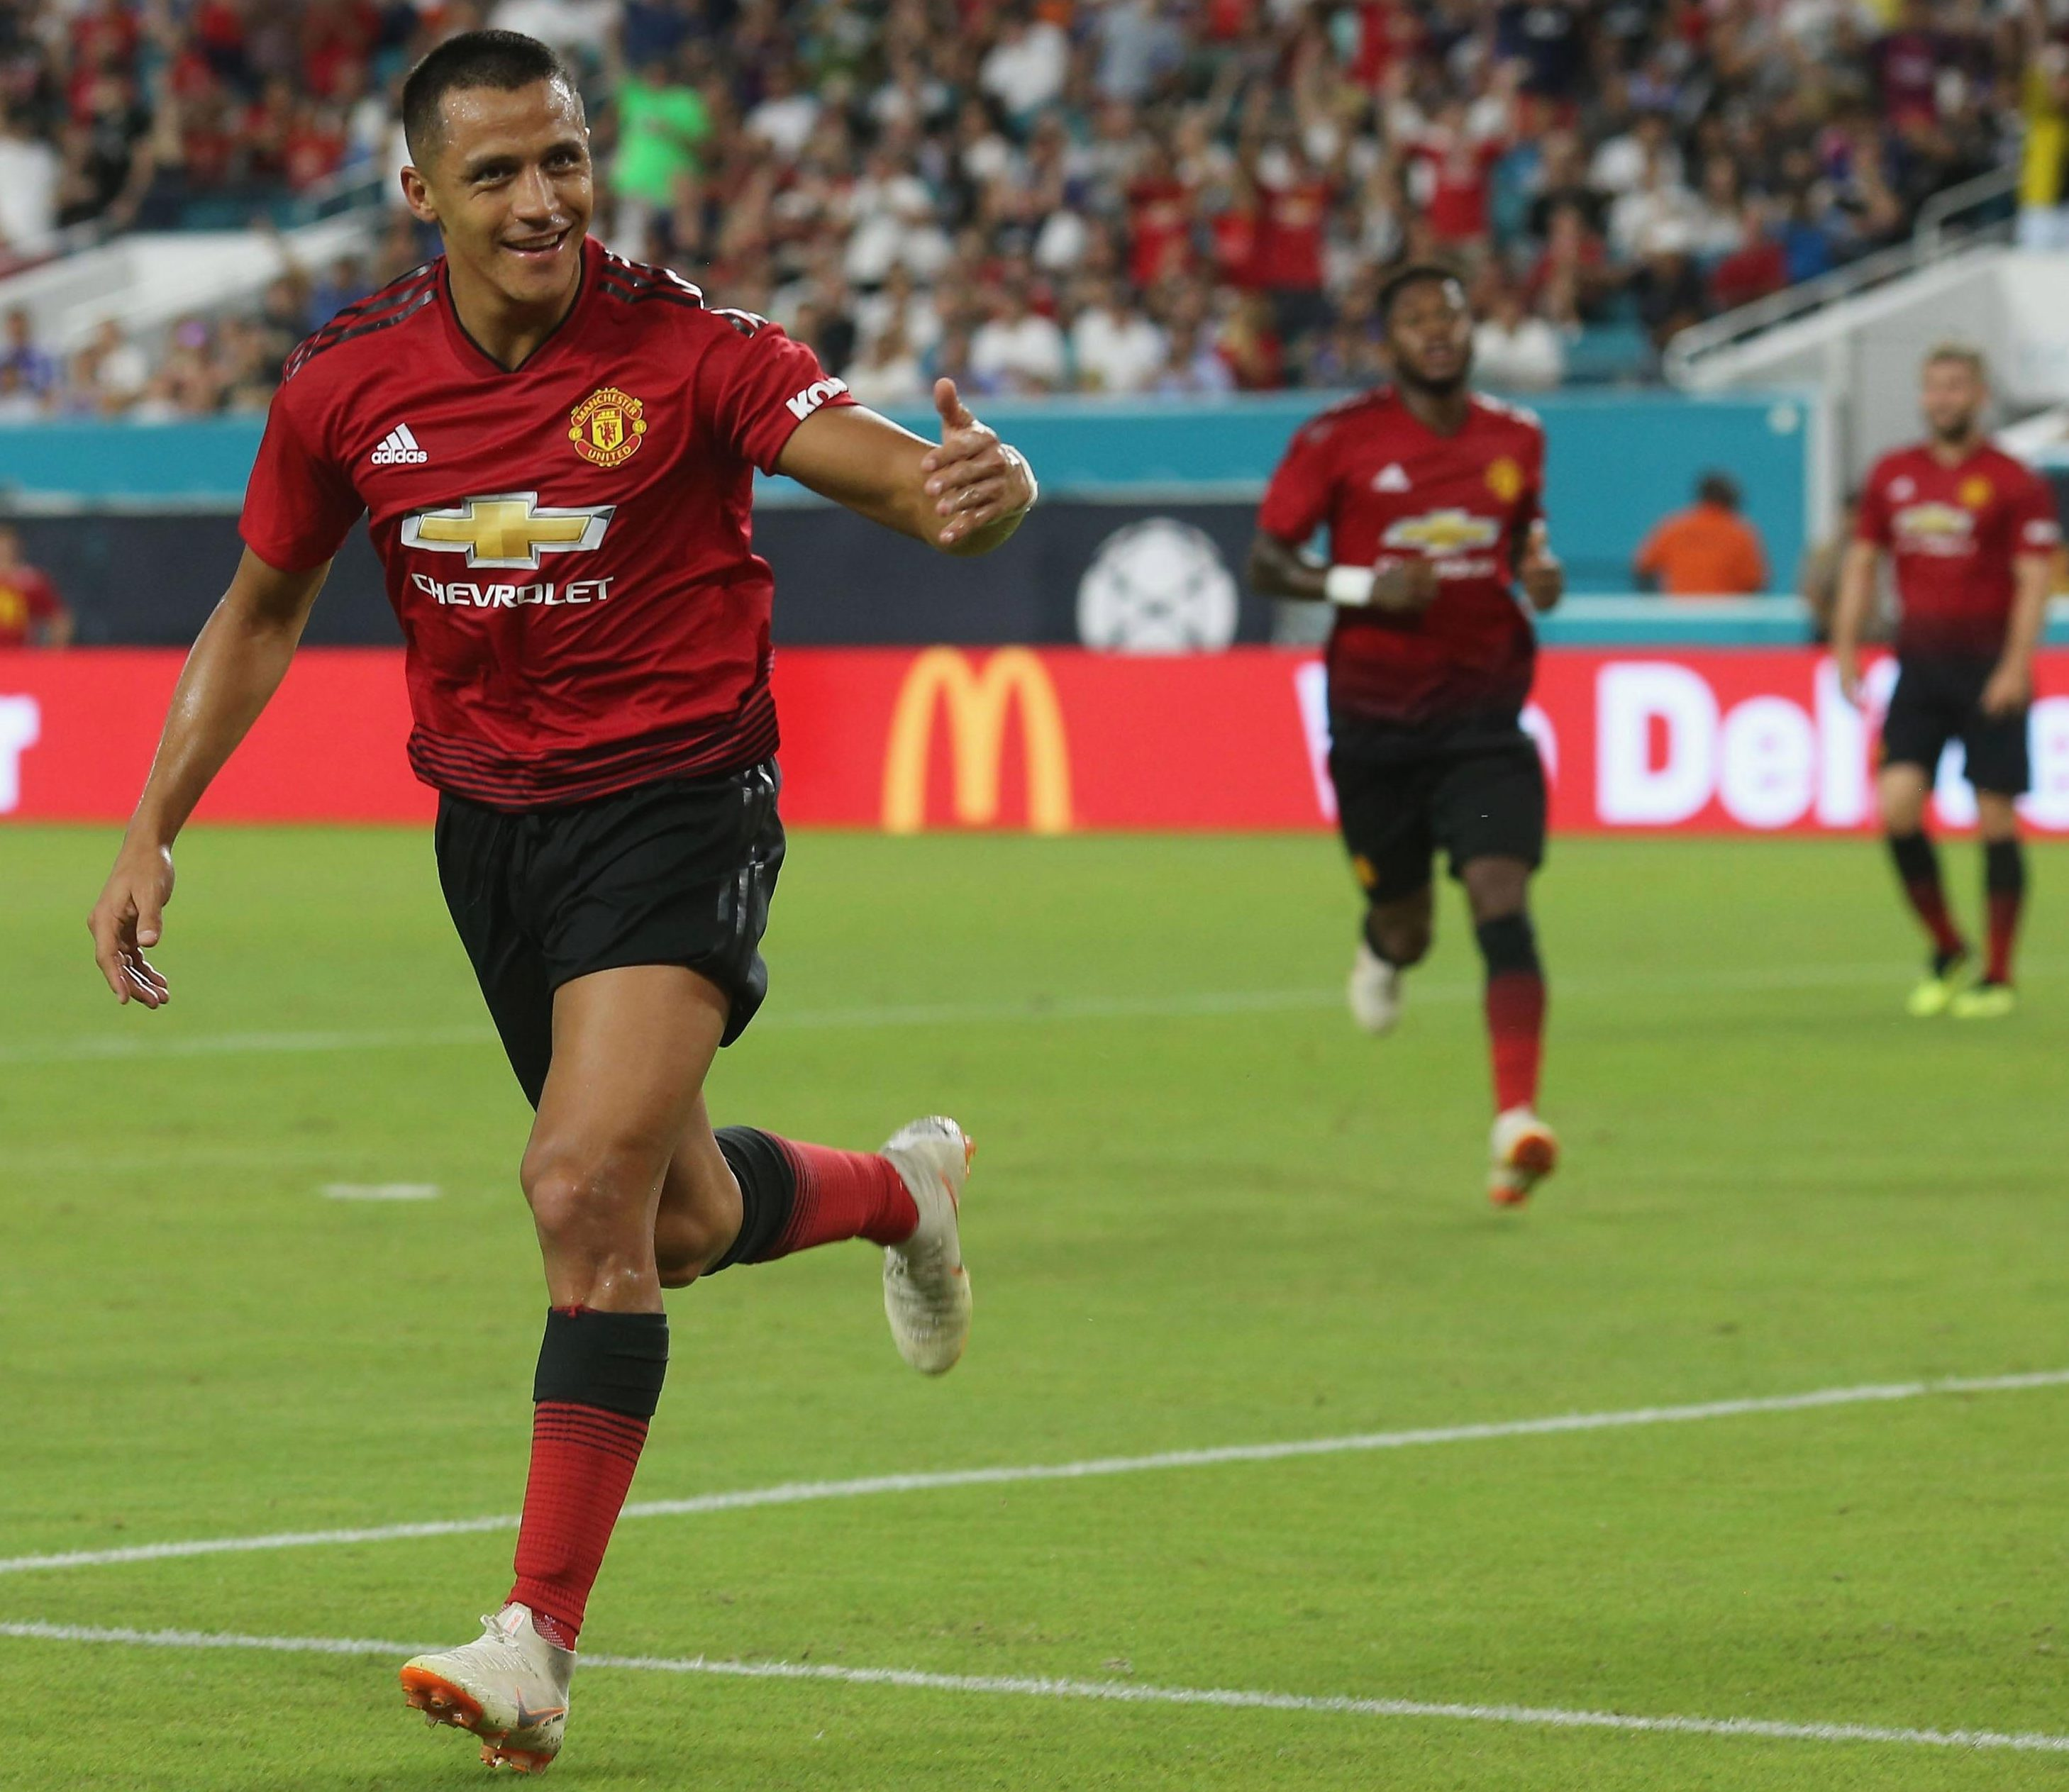 Alexis Sanchez earns around £26m a year in basic wages at Manchester United